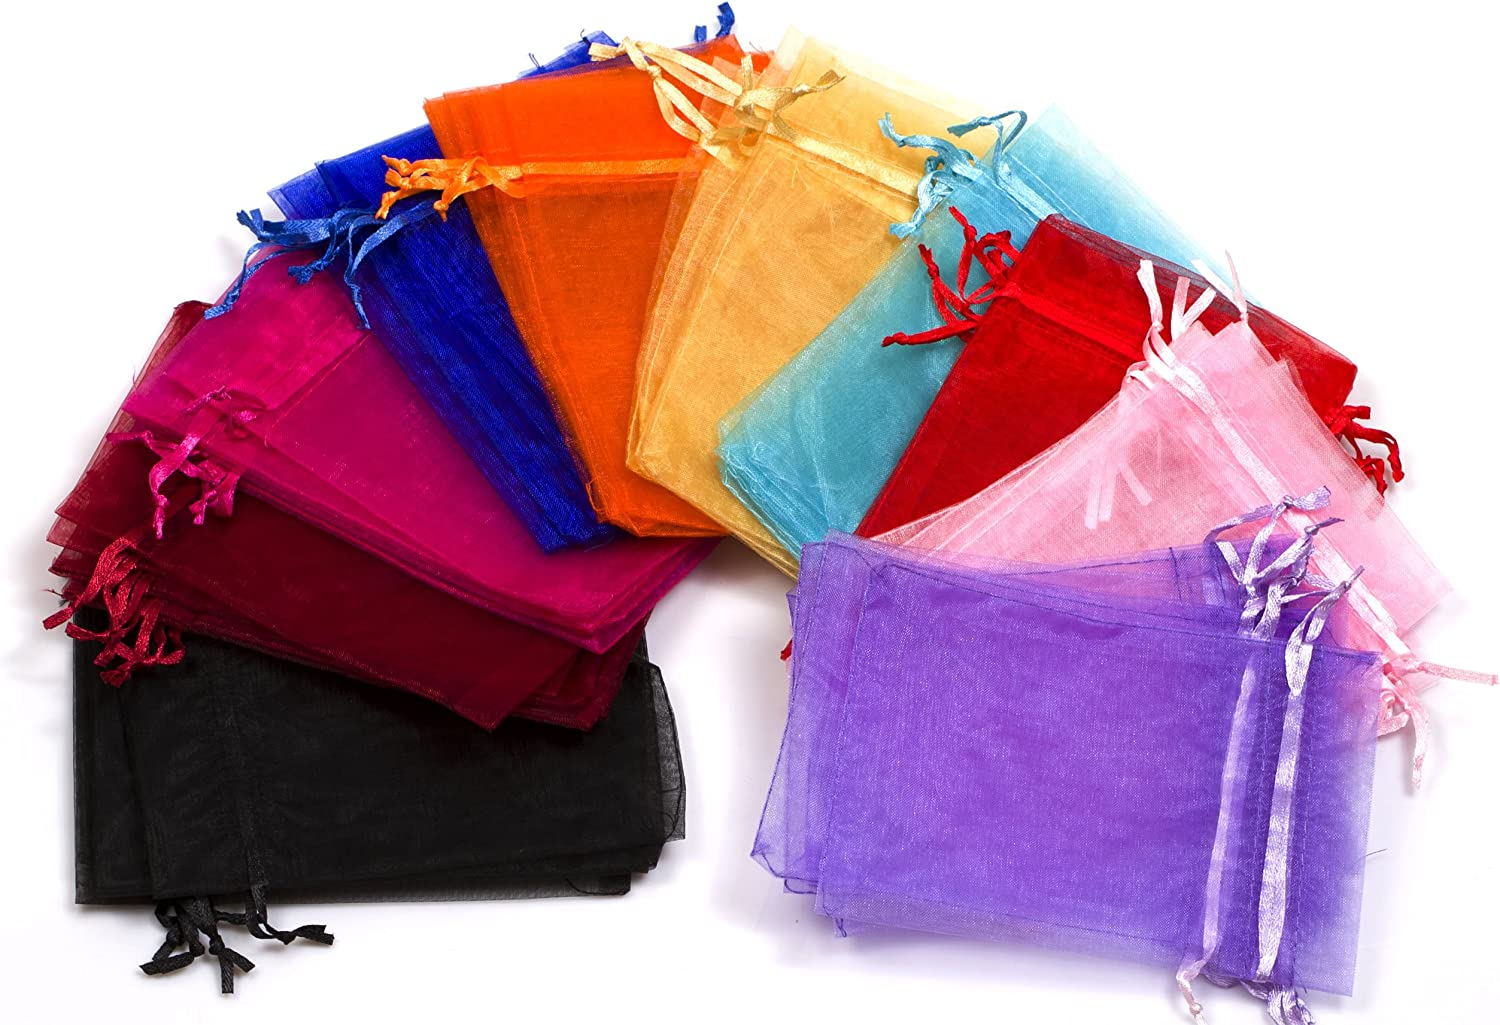 EDENKISS drawstring Organza Jewelry Pouch Bags Blue, 2.8X3.6